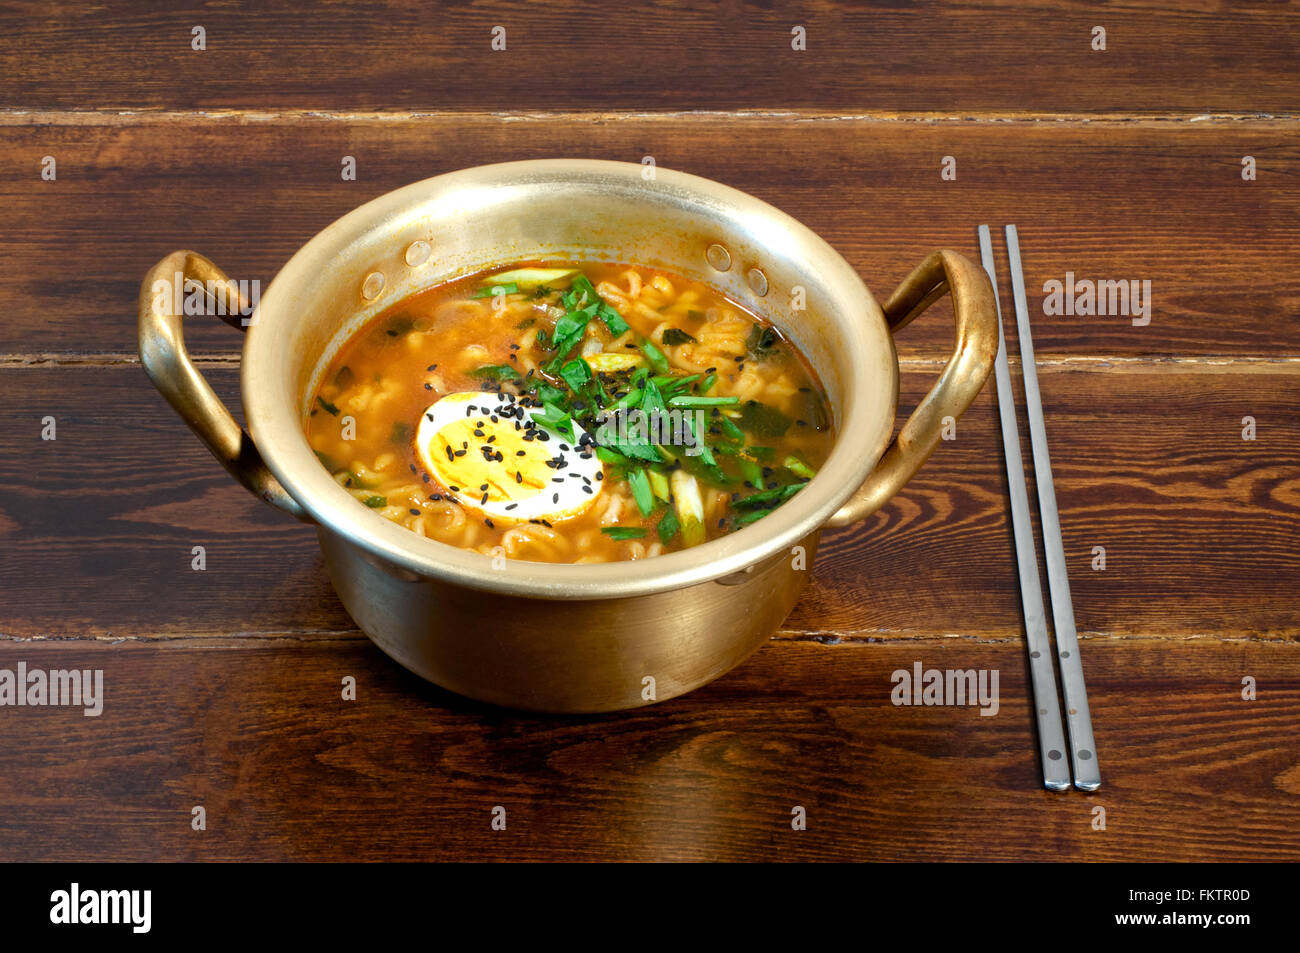 Korean ramen with egg and green onion on golden pan - Stock Image